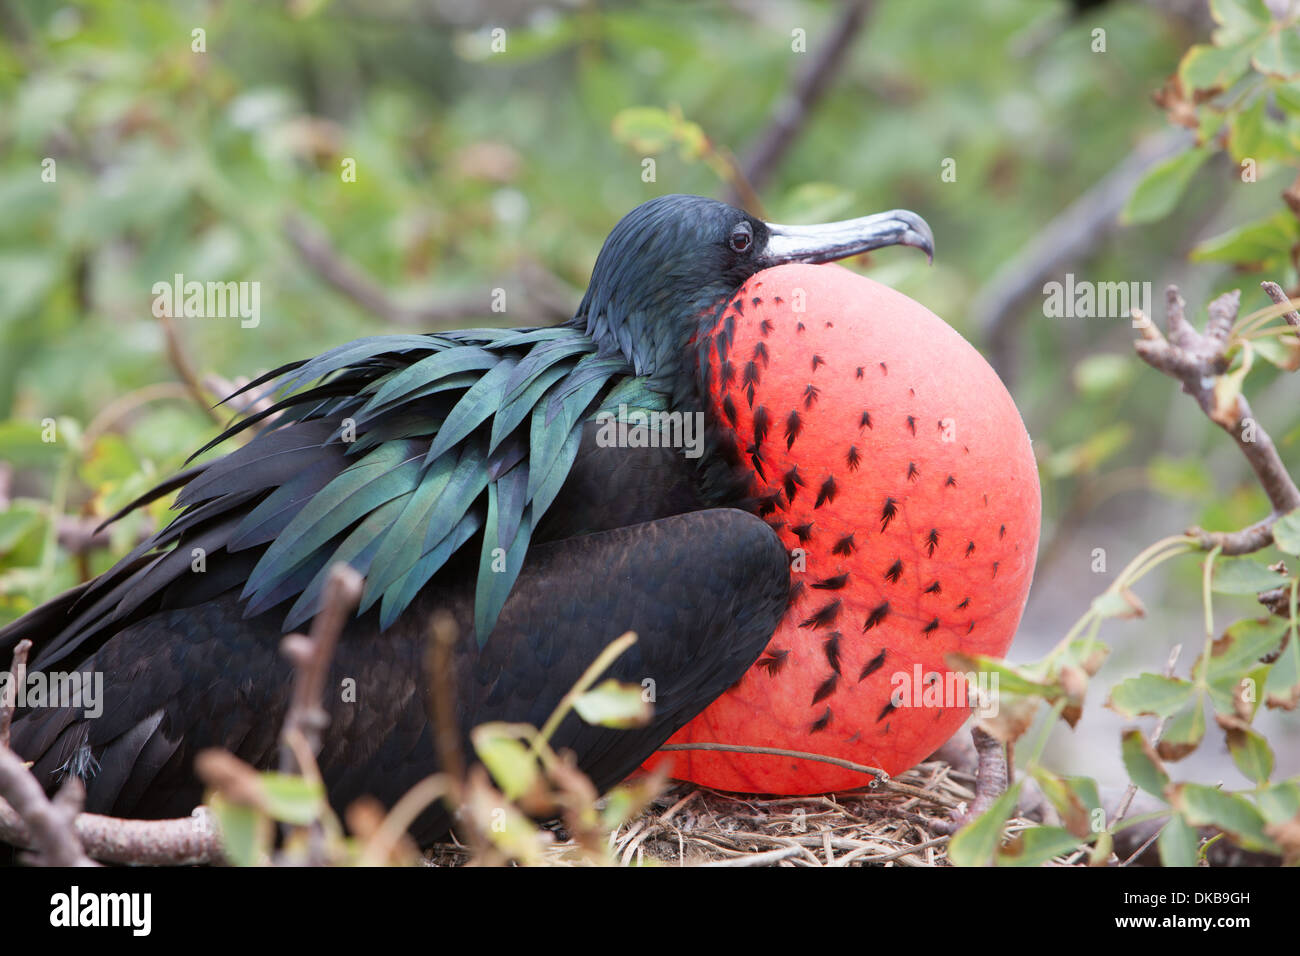 male Frigate bird with inflated gular sac - Stock Image